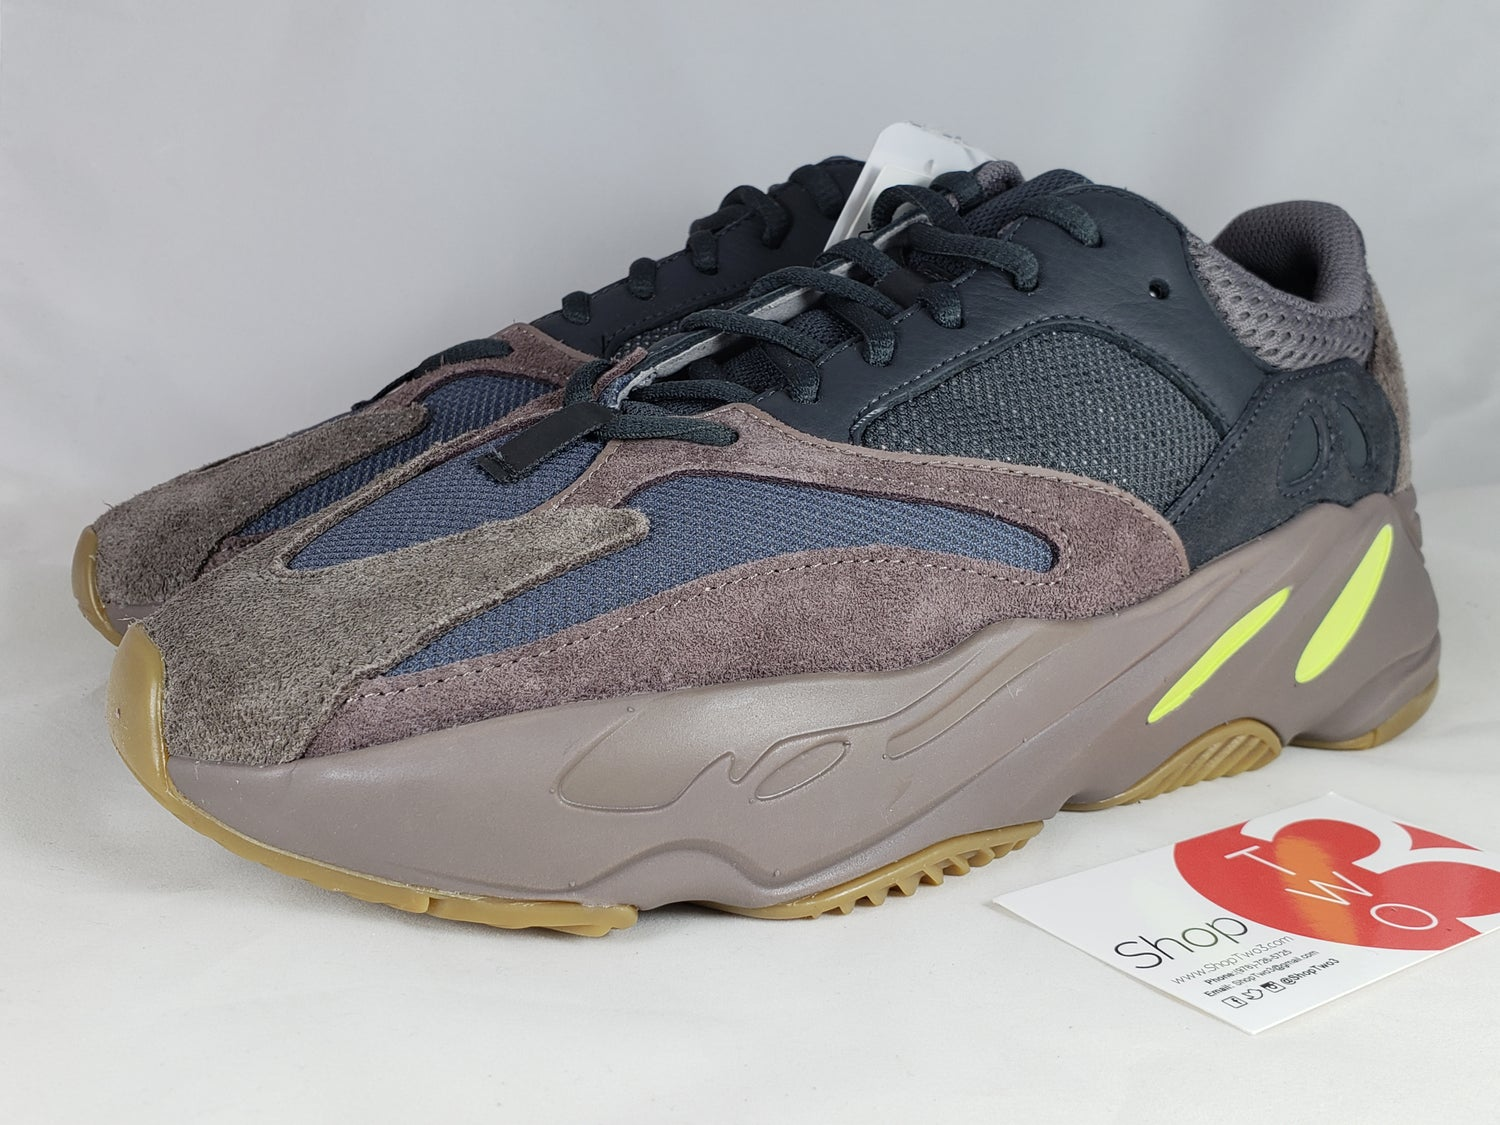 f2354be119bdb Image of Adidas Yeezy Boost 700 Mauve